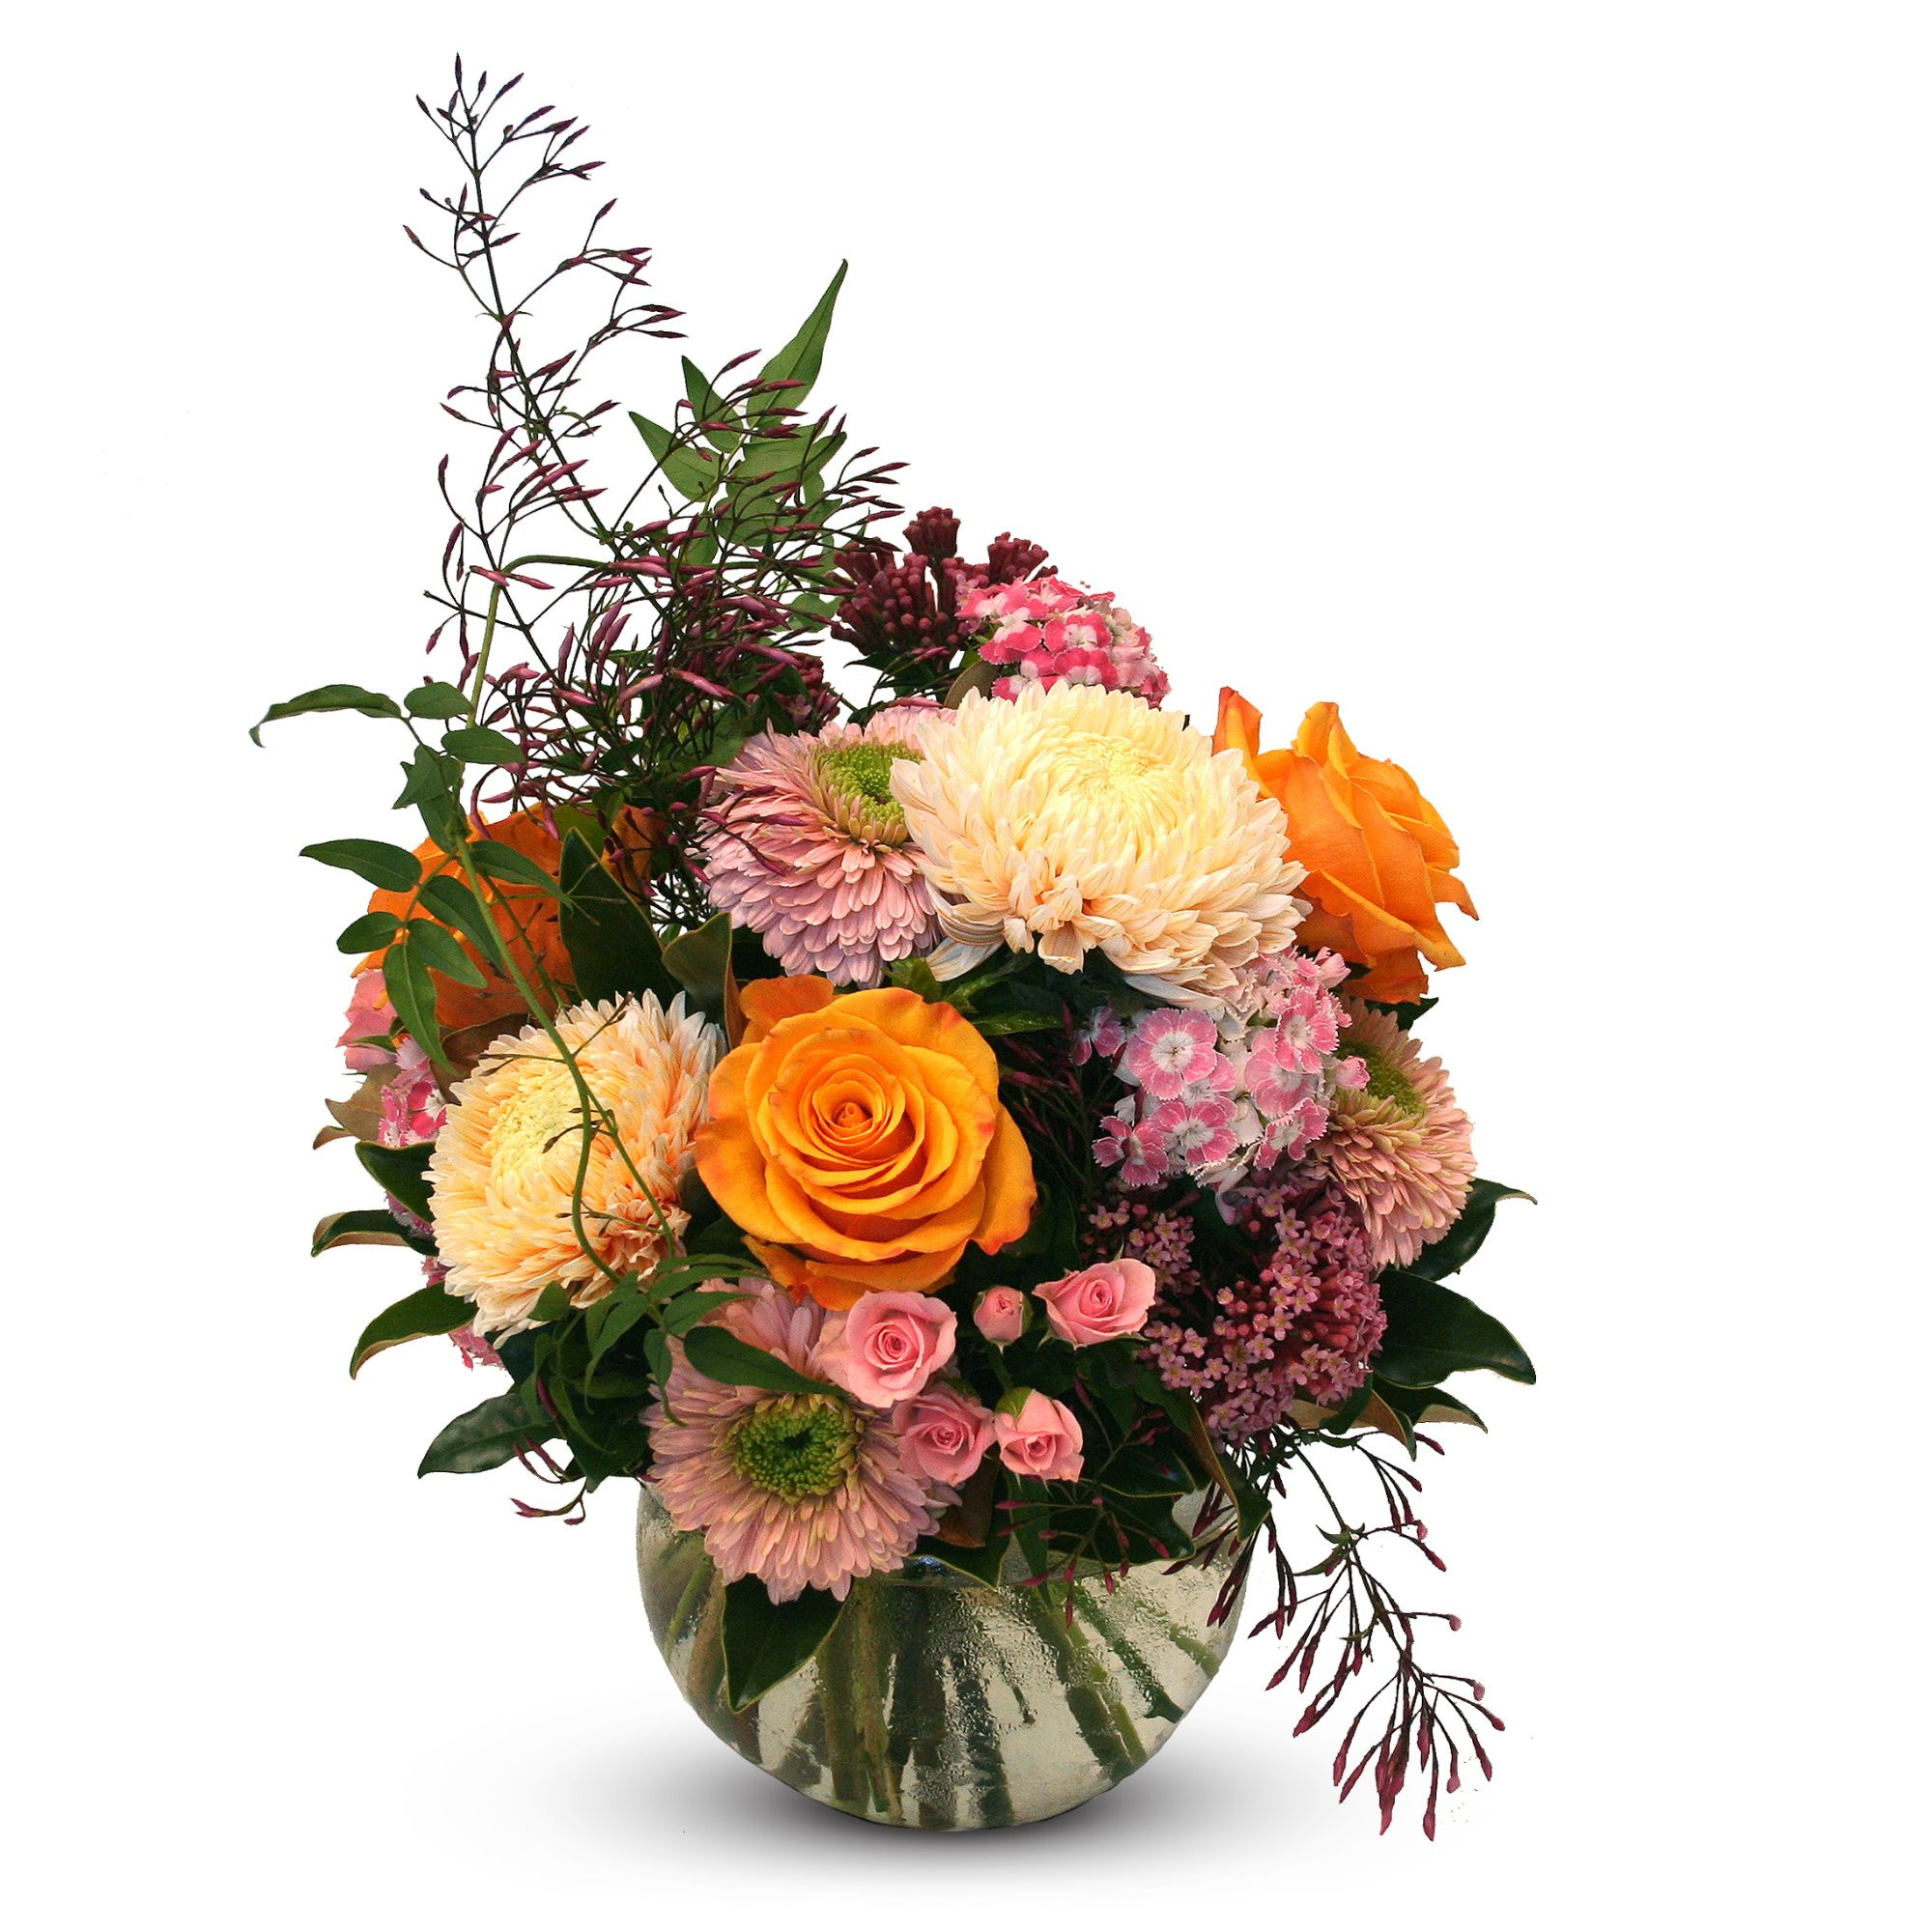 Seasonal flowers in pink peaches and pastels as a designed posy bouquet or a